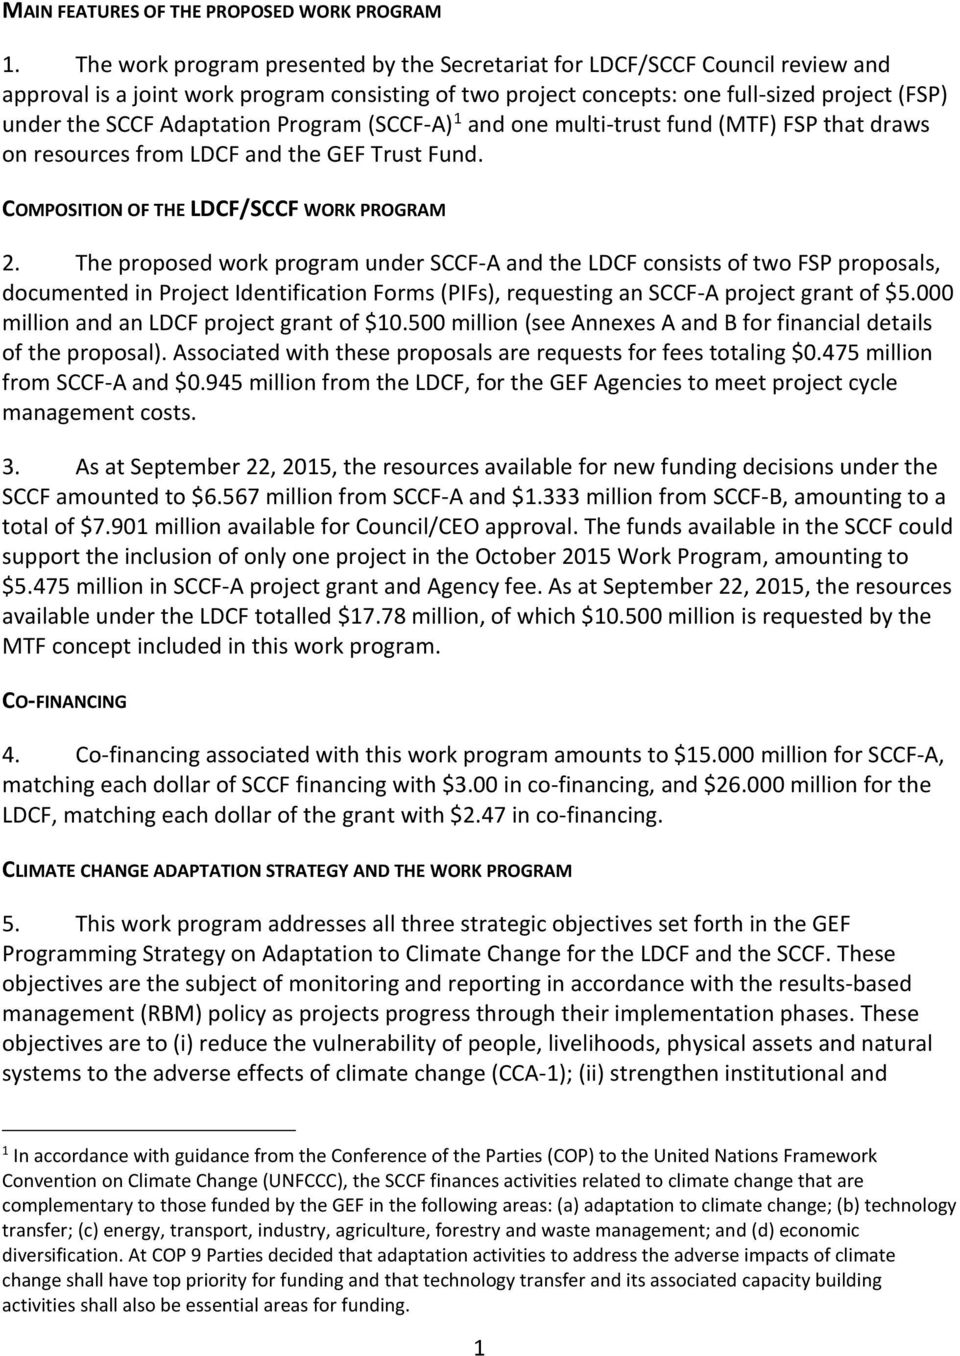 Adaptation Program (SCCF-A) 1 and one multi-trust fund (MTF) FSP that draws on resources from LDCF and the GEF Trust Fund. COMPOSITION OF THE LDCF/SCCF WORK PROGRAM 2.